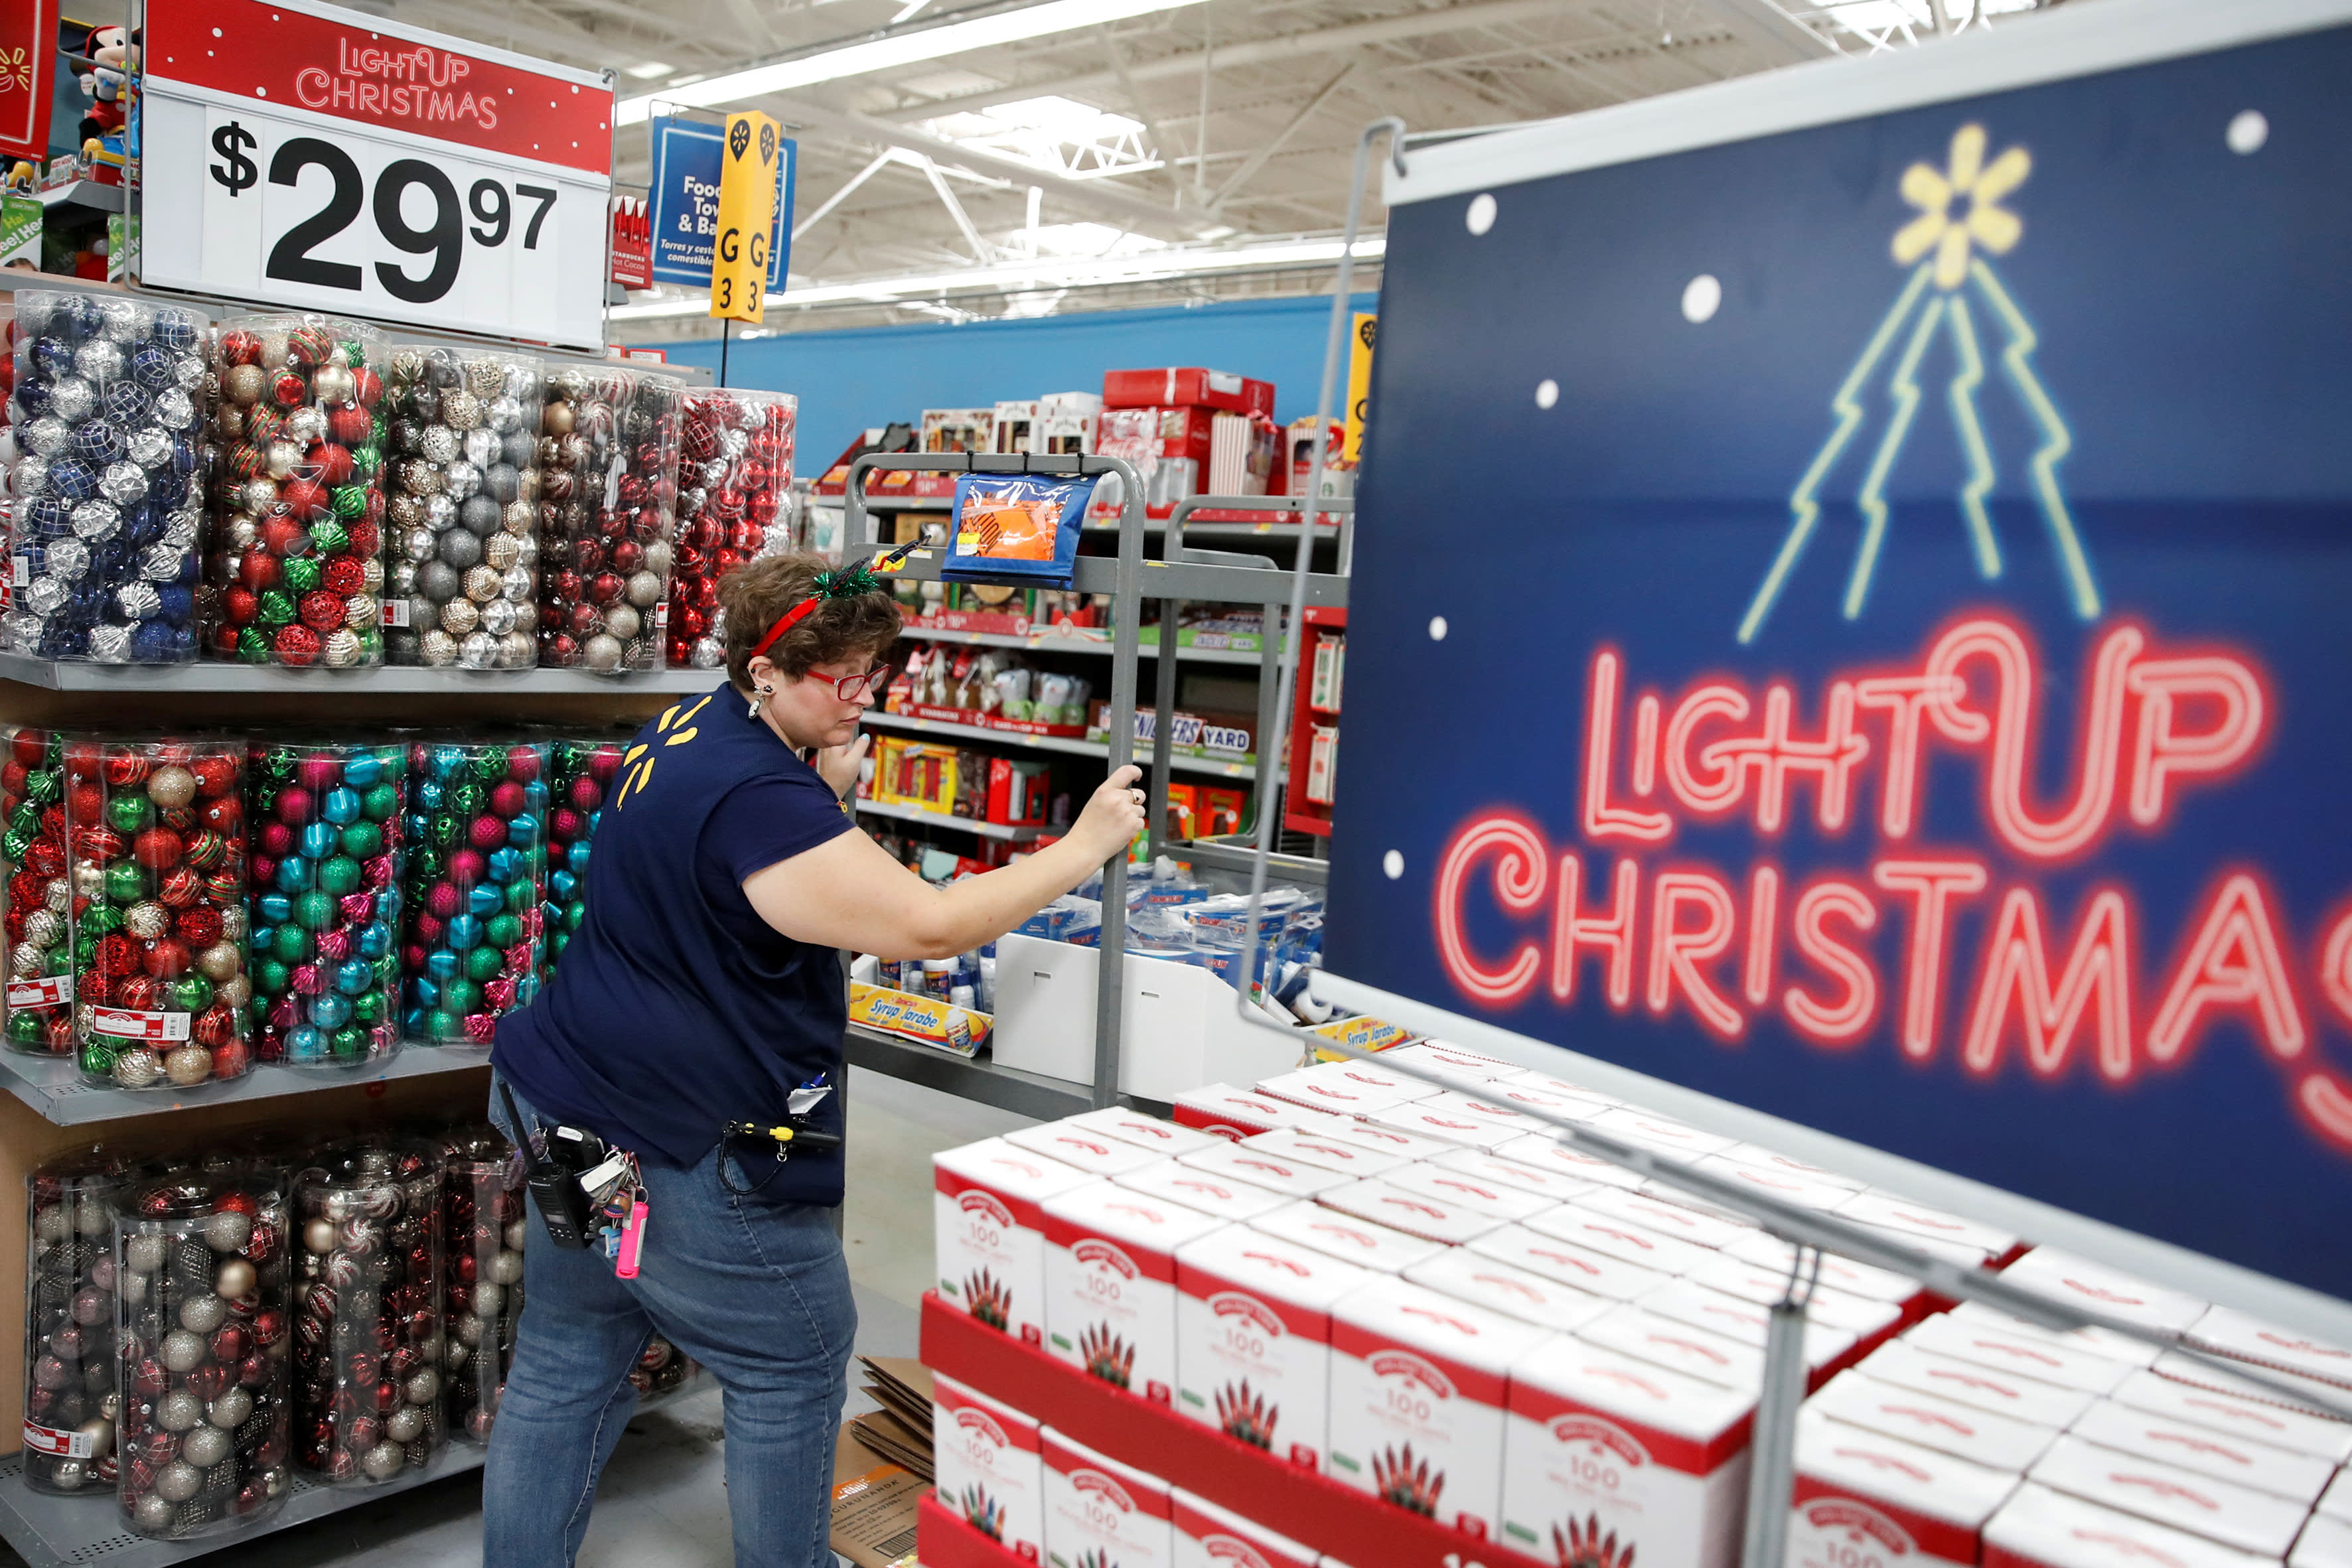 Trump said he wanted to save Christmas, but shoppers fear tariffs could ruin the holiday season